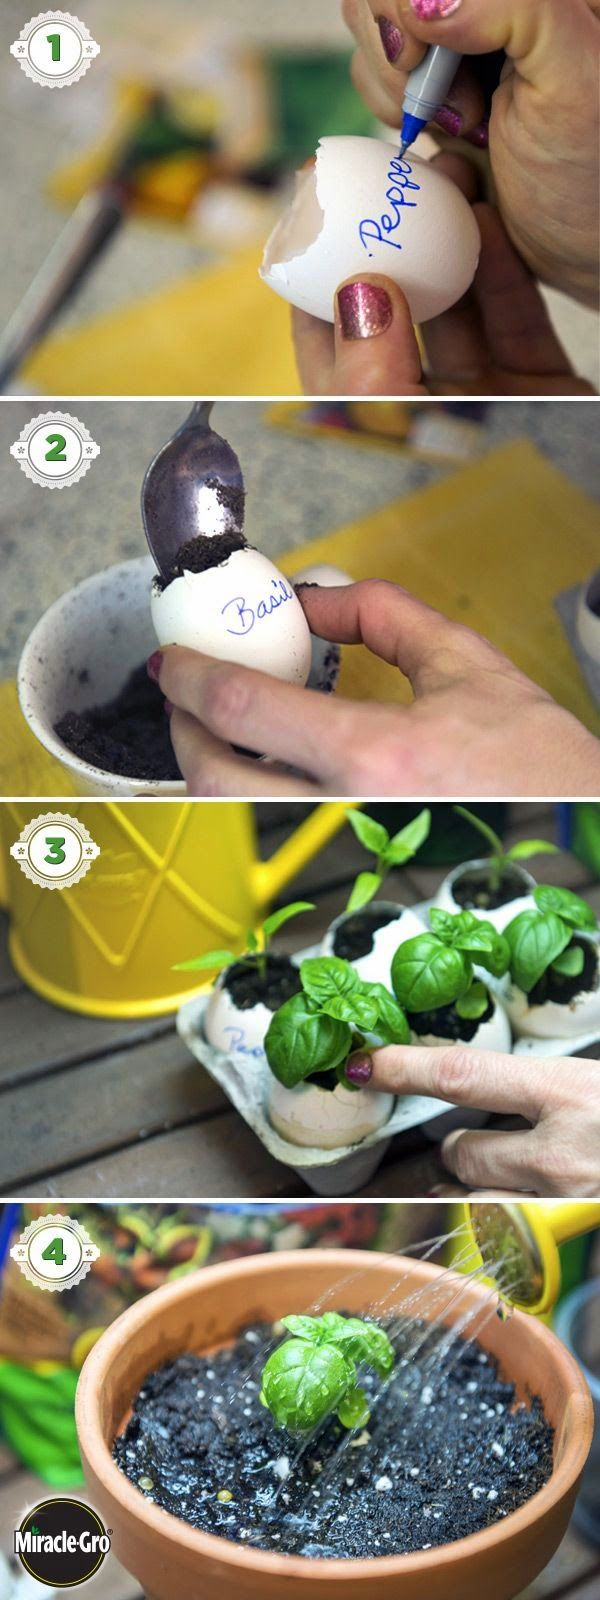 This is a fun way to start your vegetable or flowers seeds indoors to get a jump on the growing season